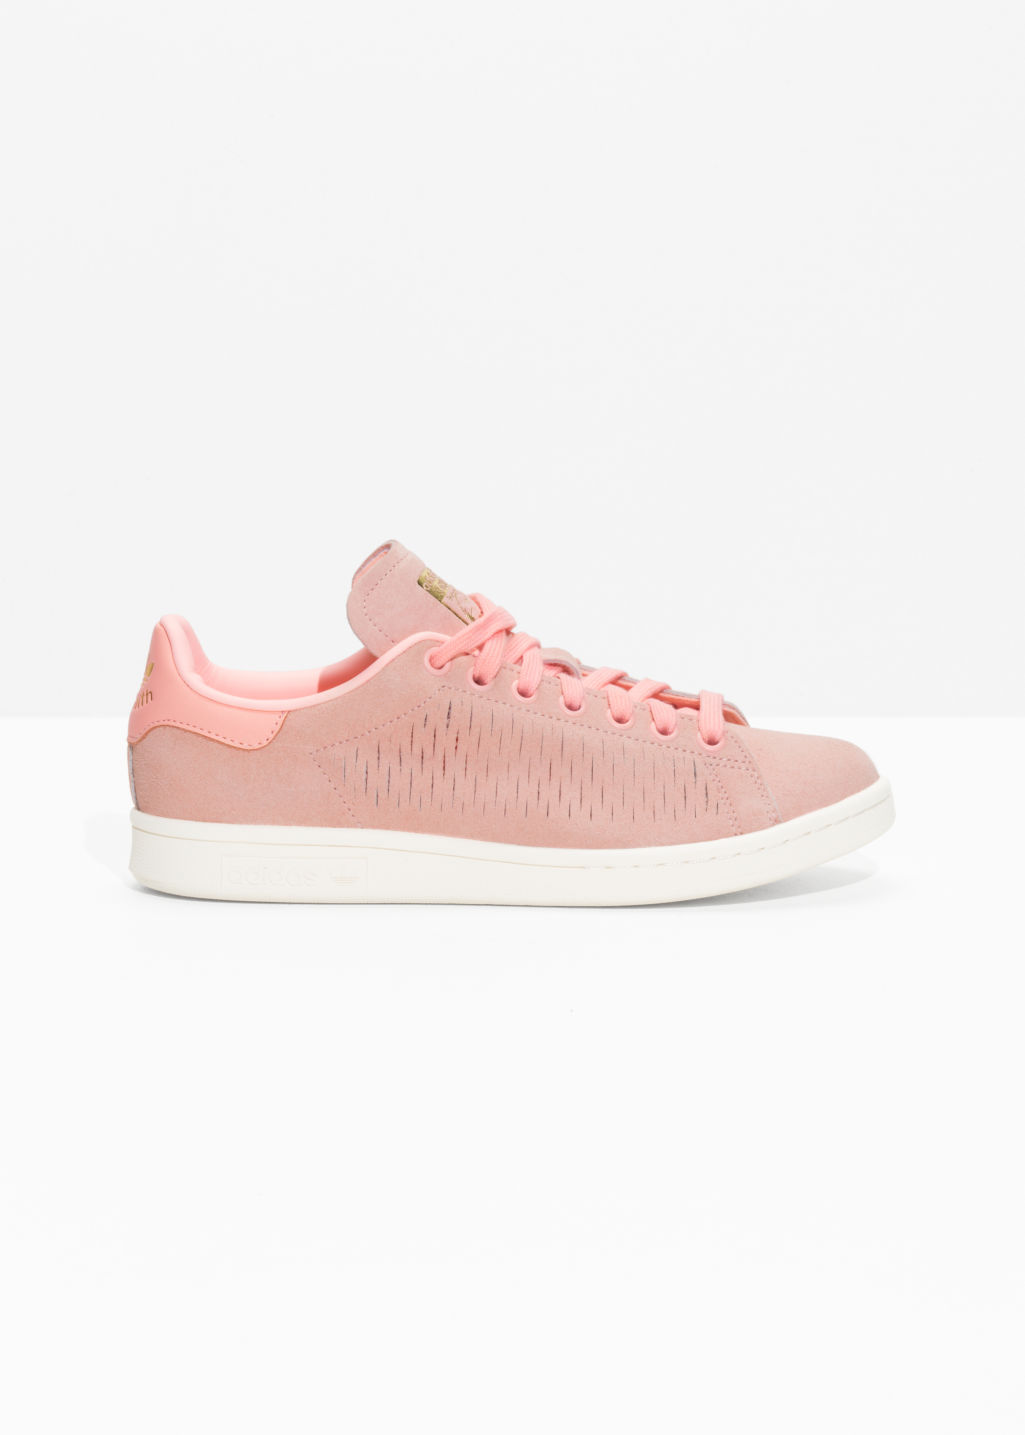 new concept 40f95 41cbe adidas Stan Smith W - Pink - Adidas - & Other Stories